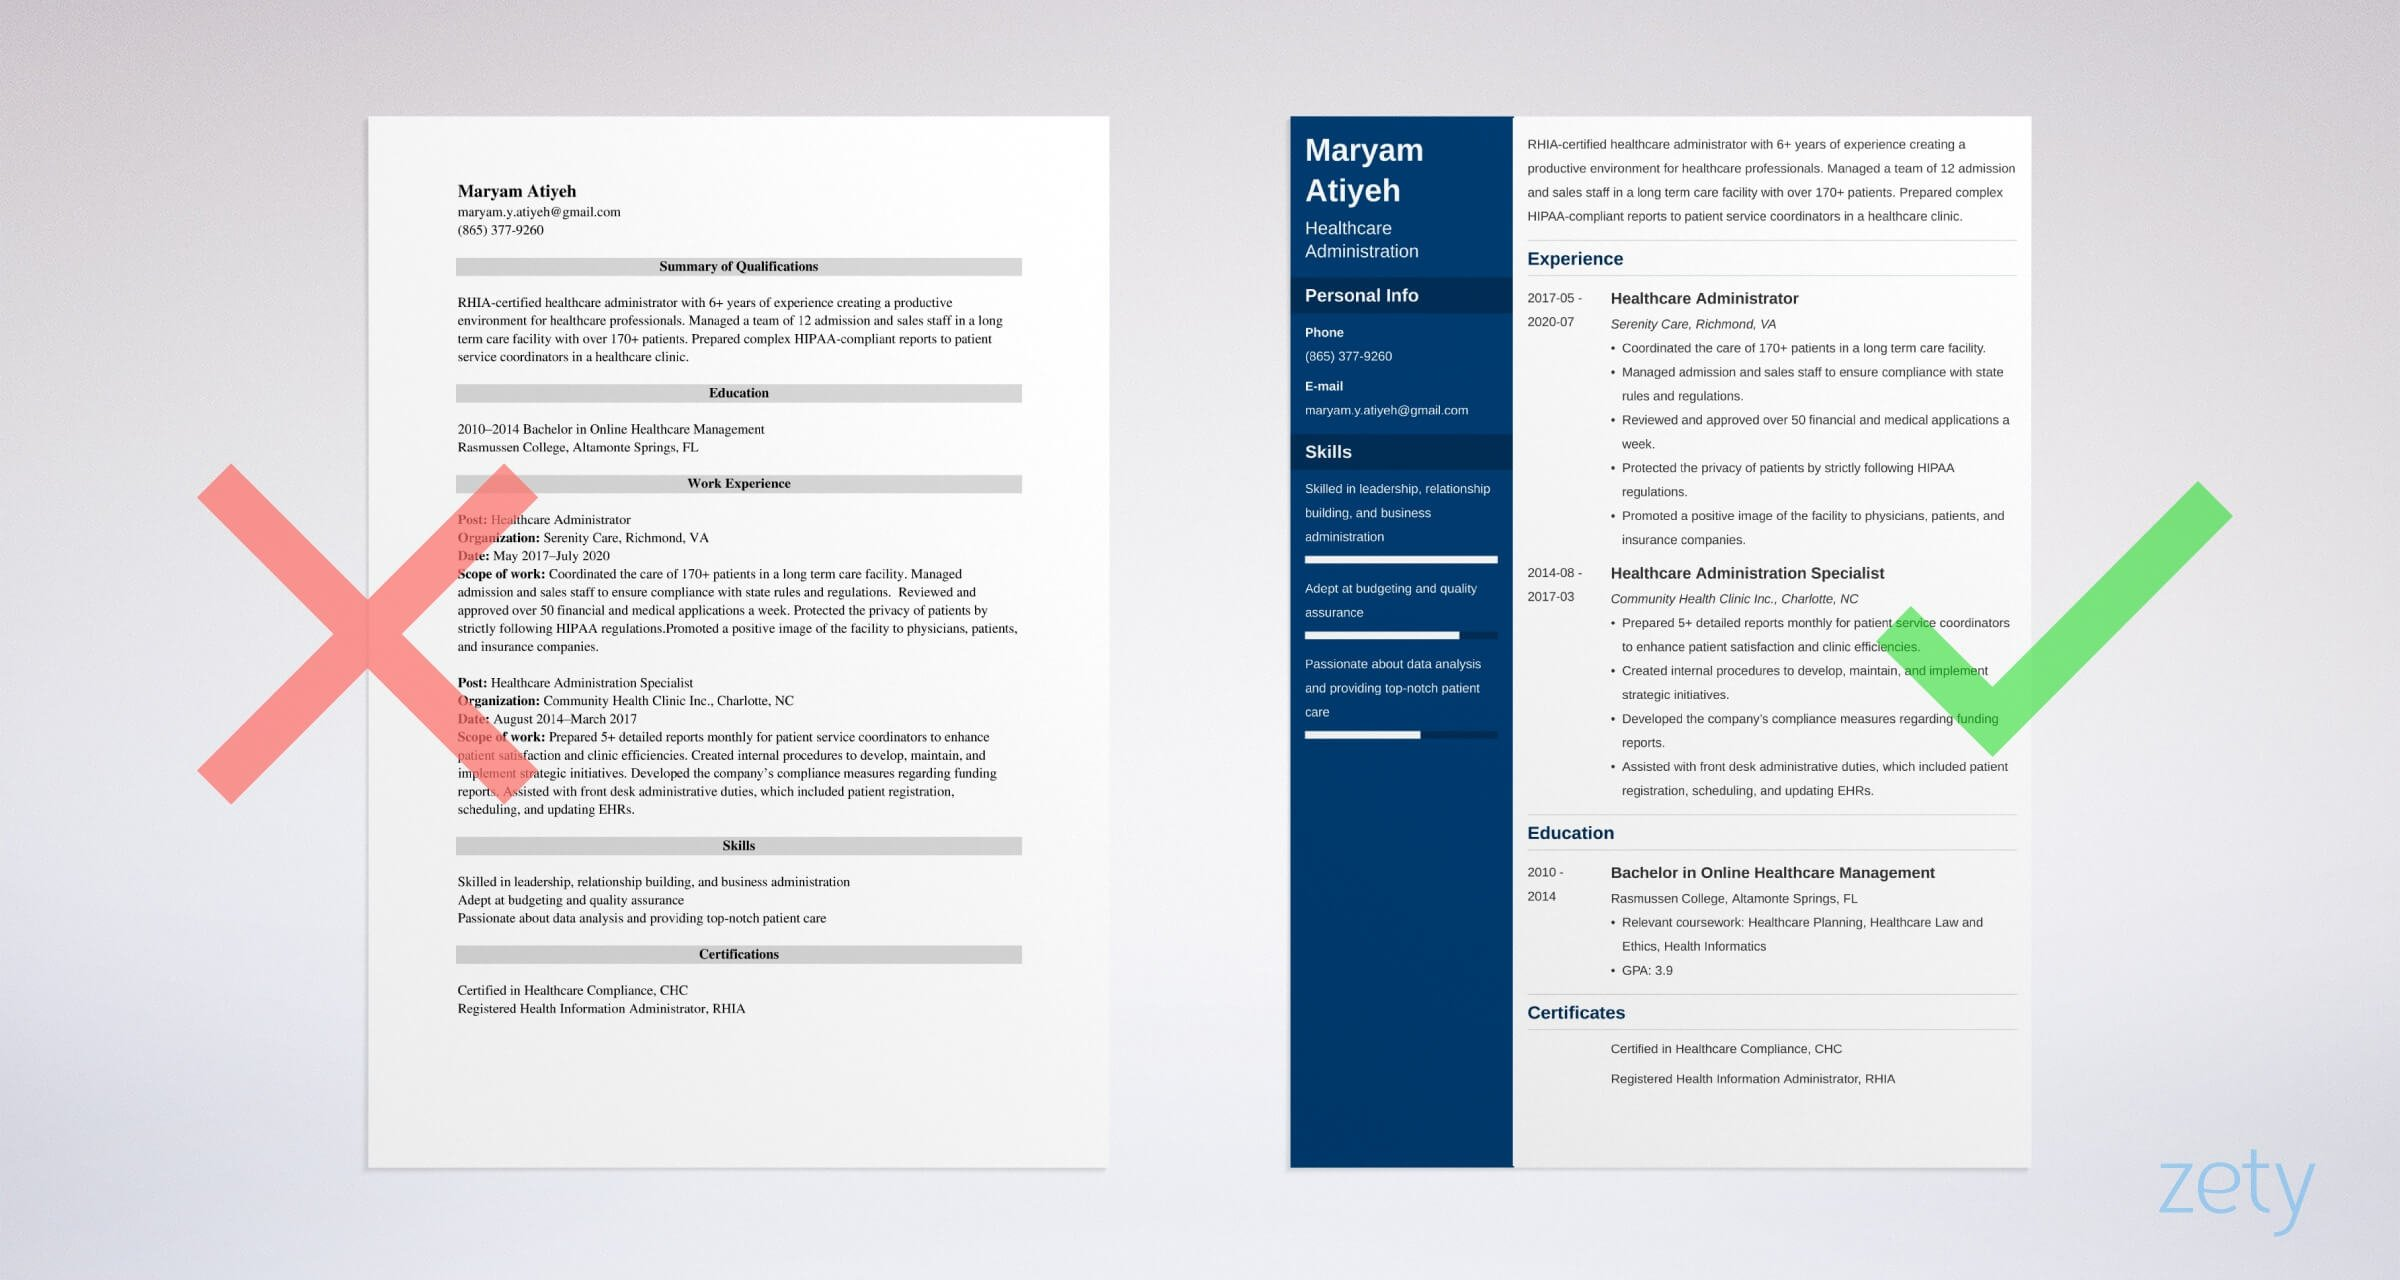 helathcare administration resume templates